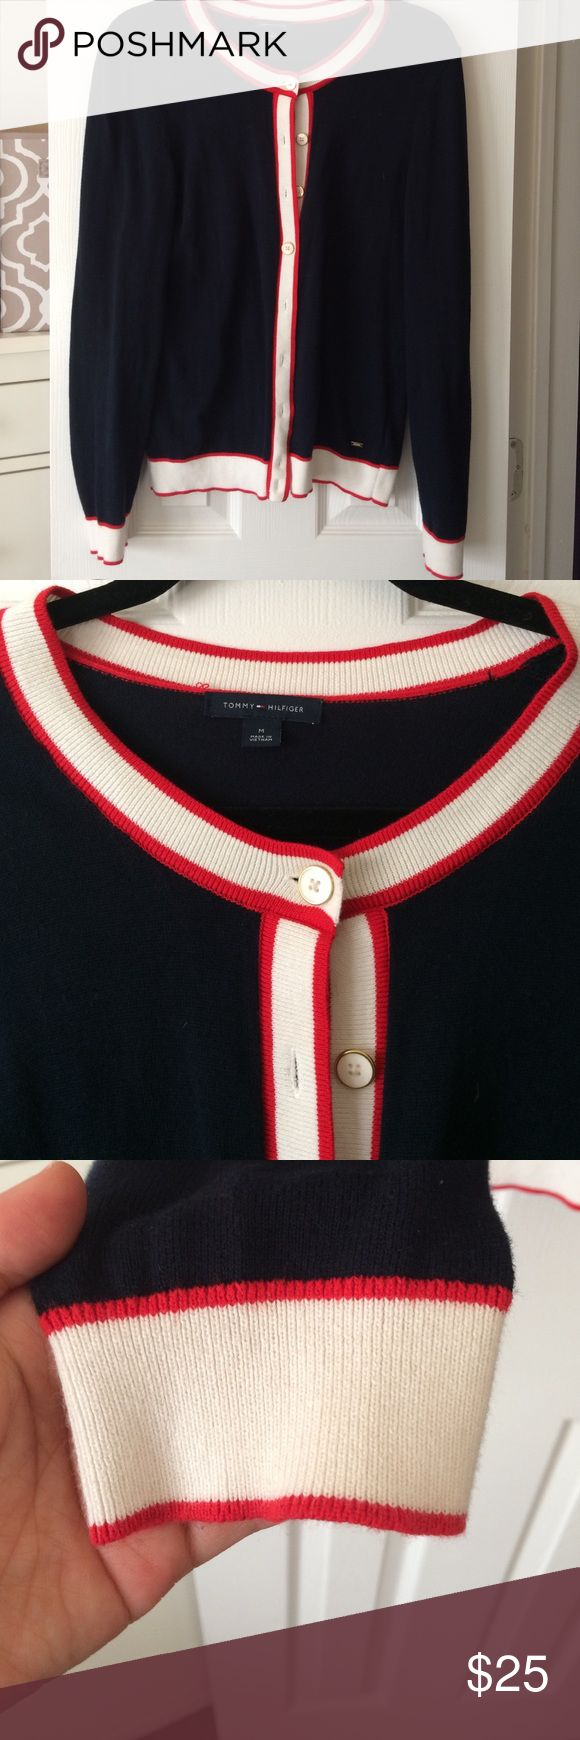 Tommy Hilfiger Nautical Cardigan Tommy Hilfiger nautical navy cardigan with red and white accent. White and gold buttons. Great for work or play! Tommy Hilfiger Sweaters Cardigans